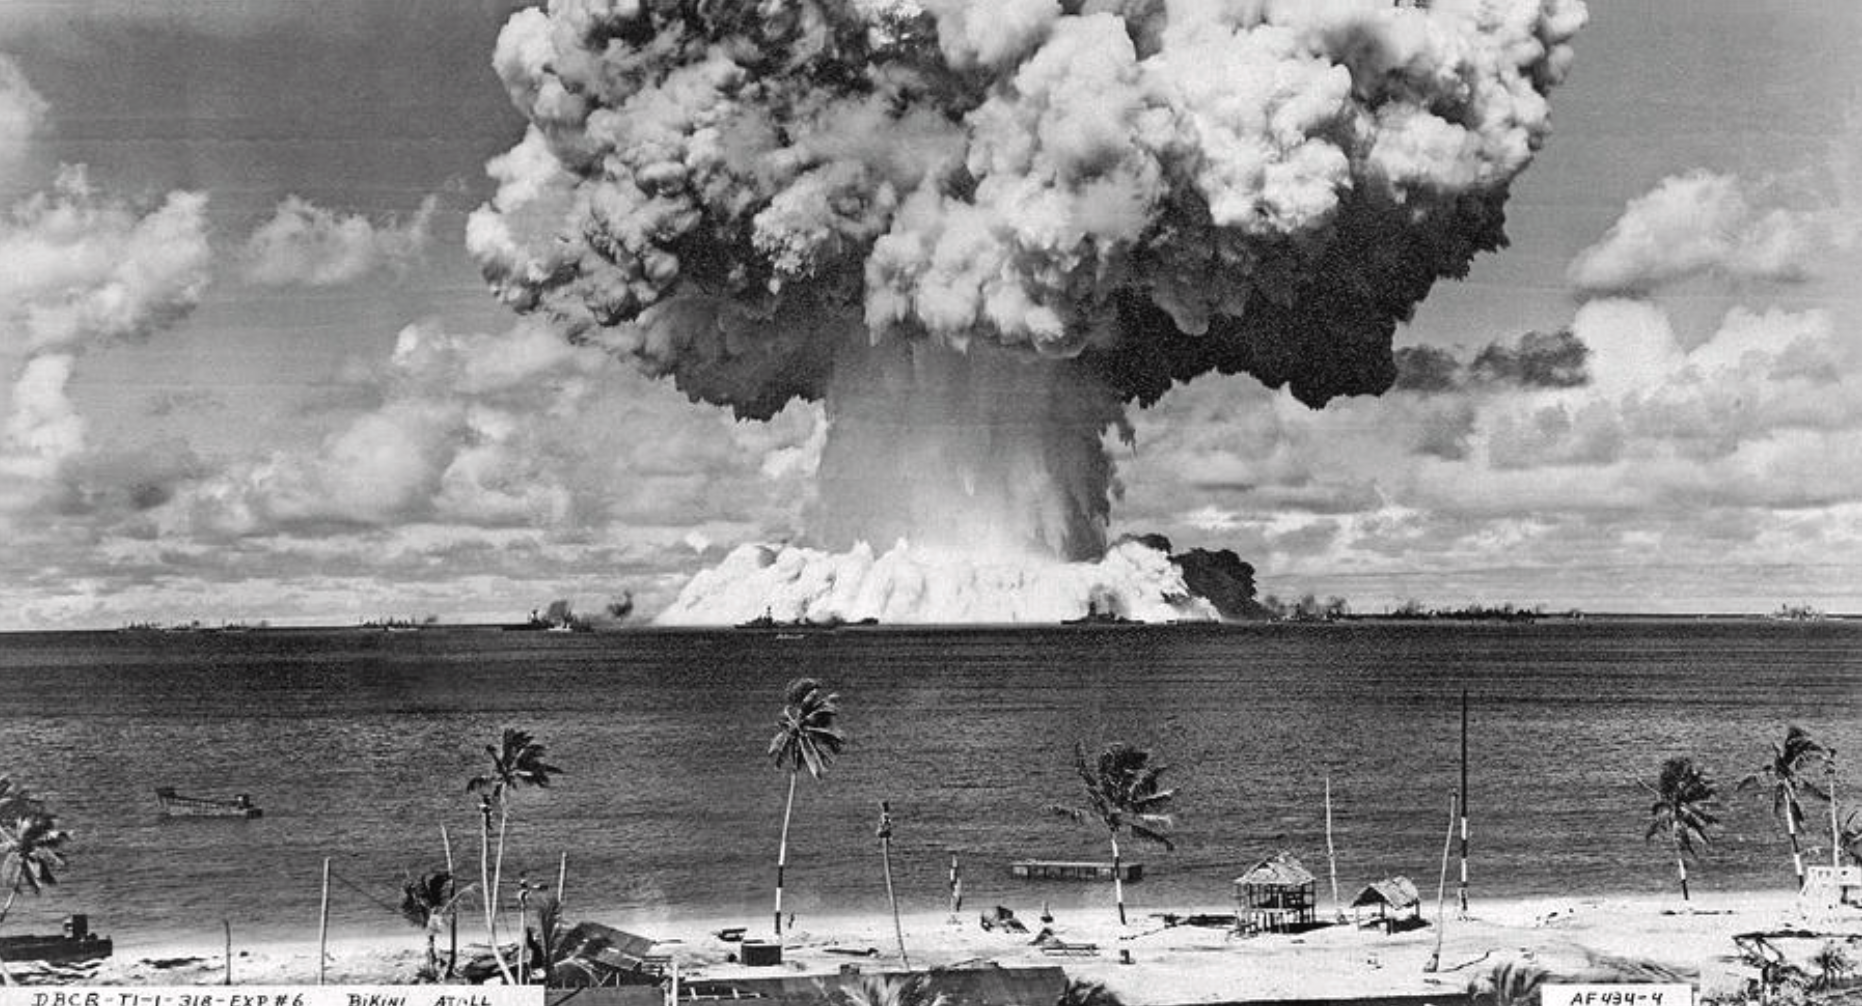 atomic test at Bikini atoll